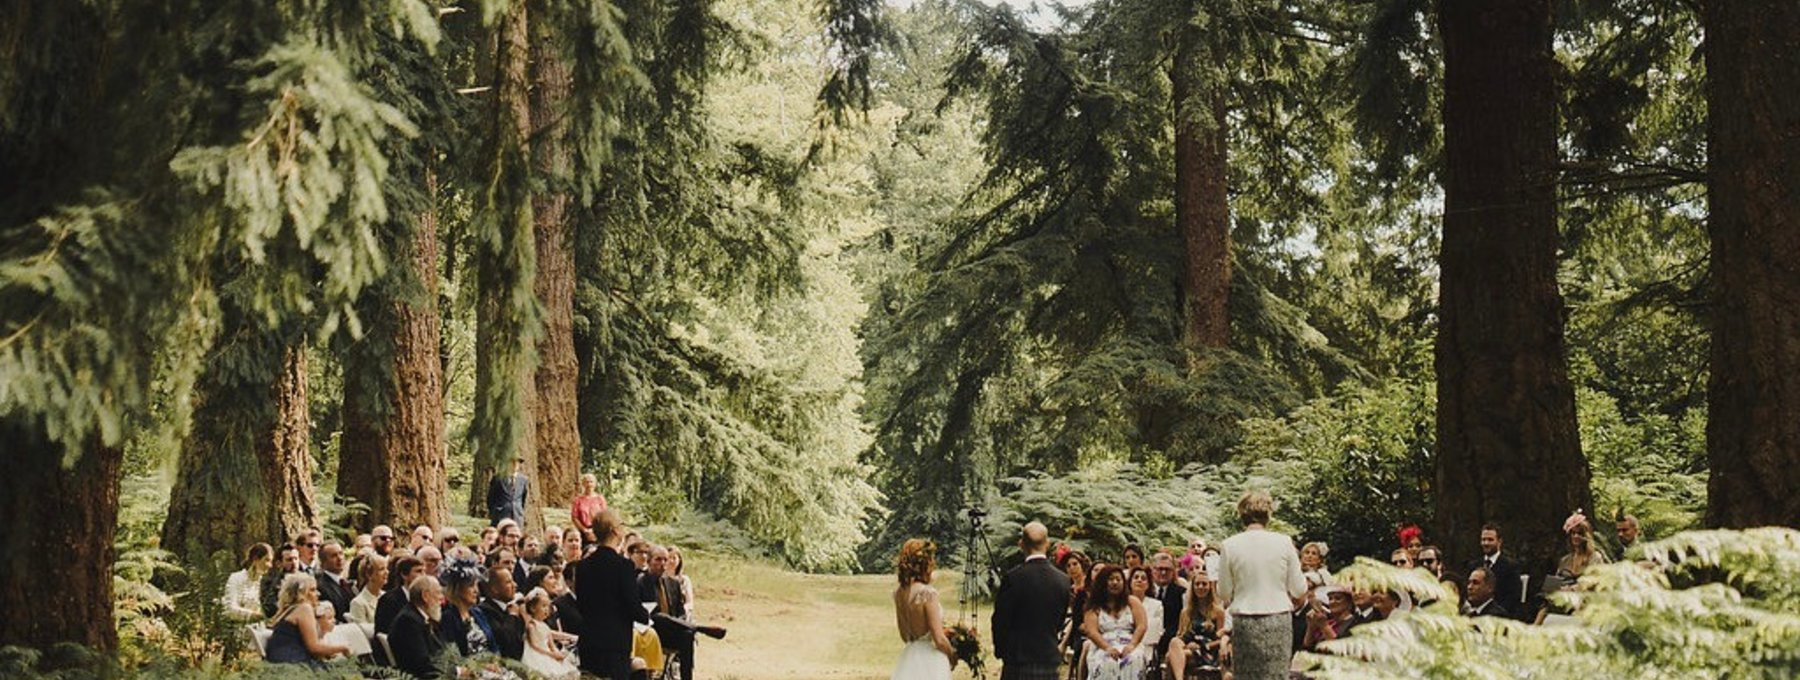 Humanist wedding at Murthly Estate - The Douglas fir terrace is the perfect woodland setting for a humanist wedding at Murthly Estate.